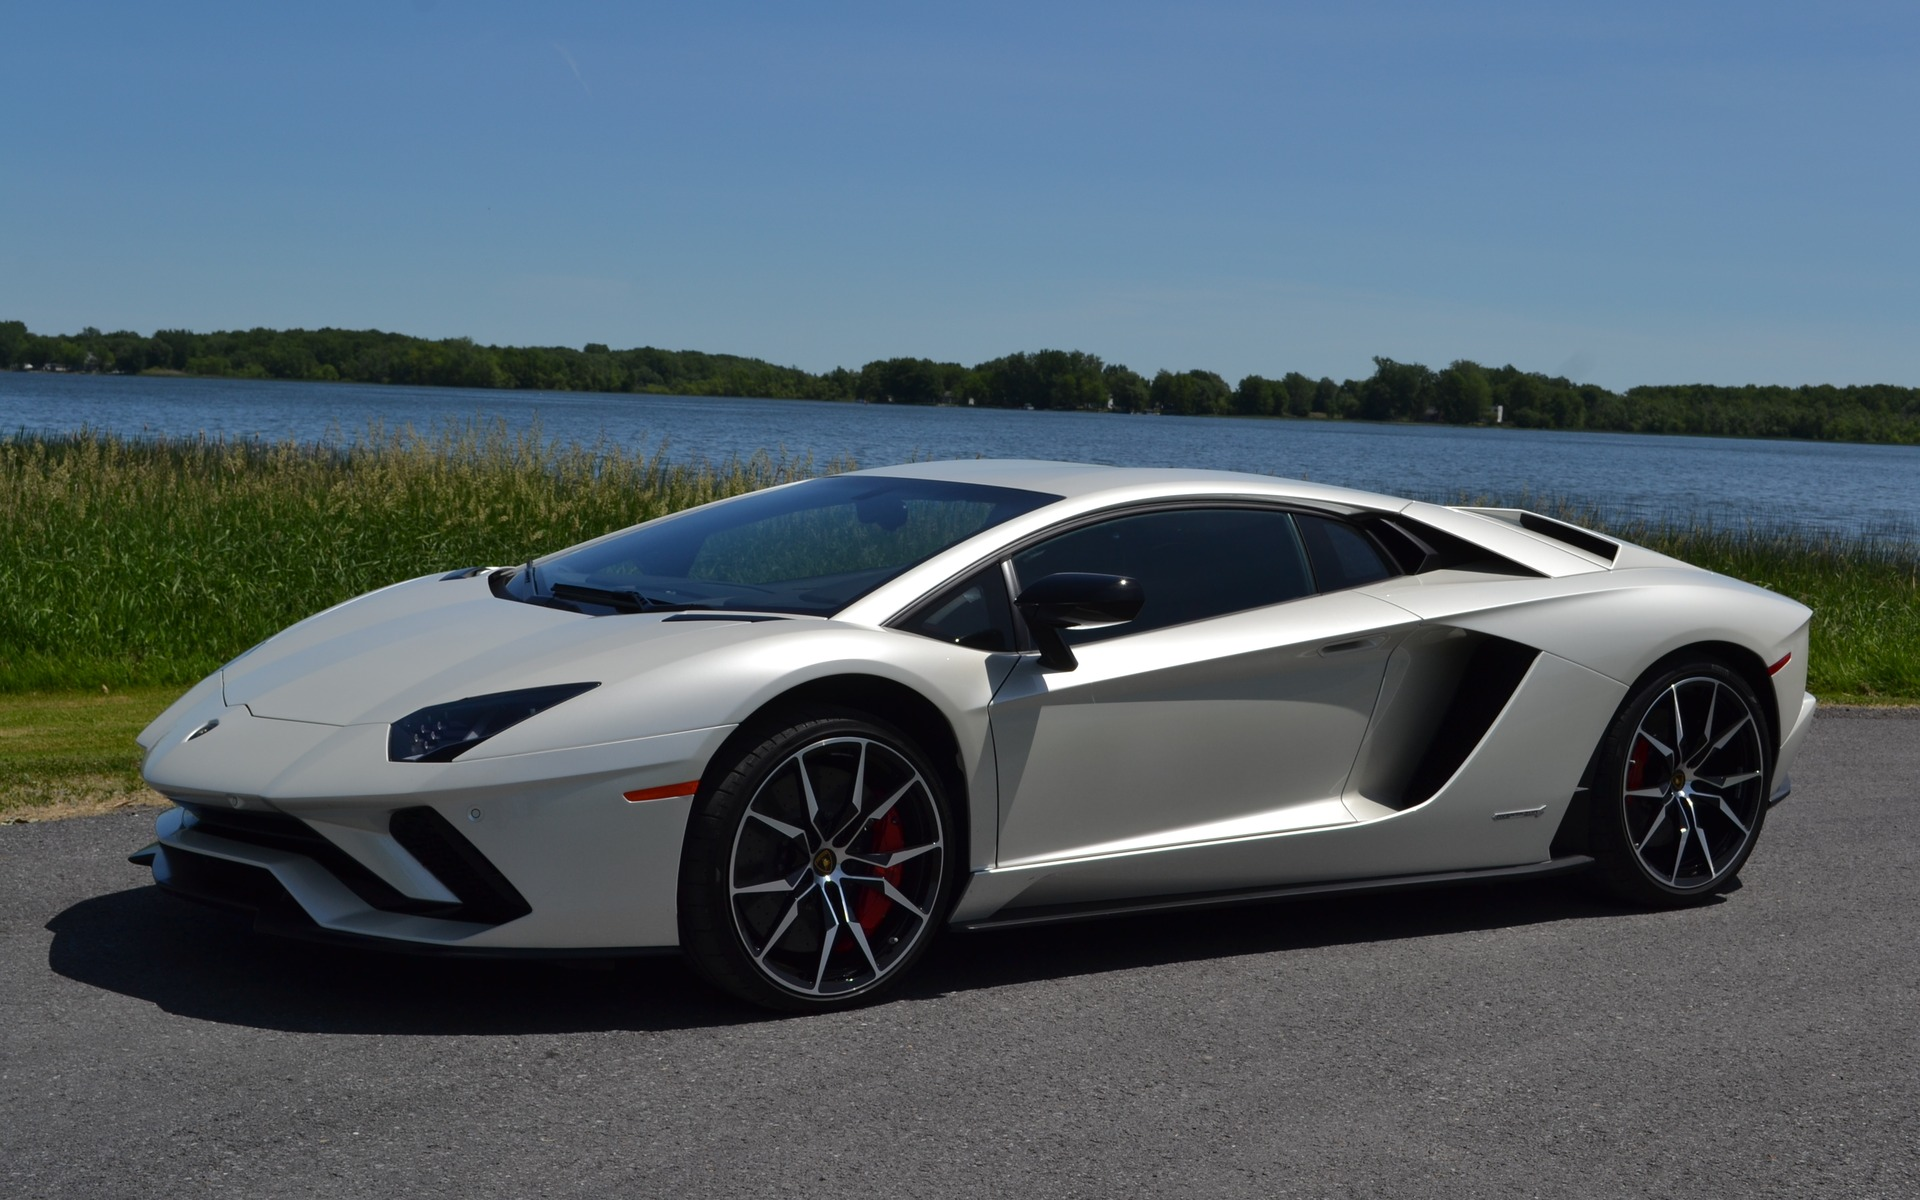 2018 lamborghini aventador news reviews picture galleries and videos the car guide. Black Bedroom Furniture Sets. Home Design Ideas